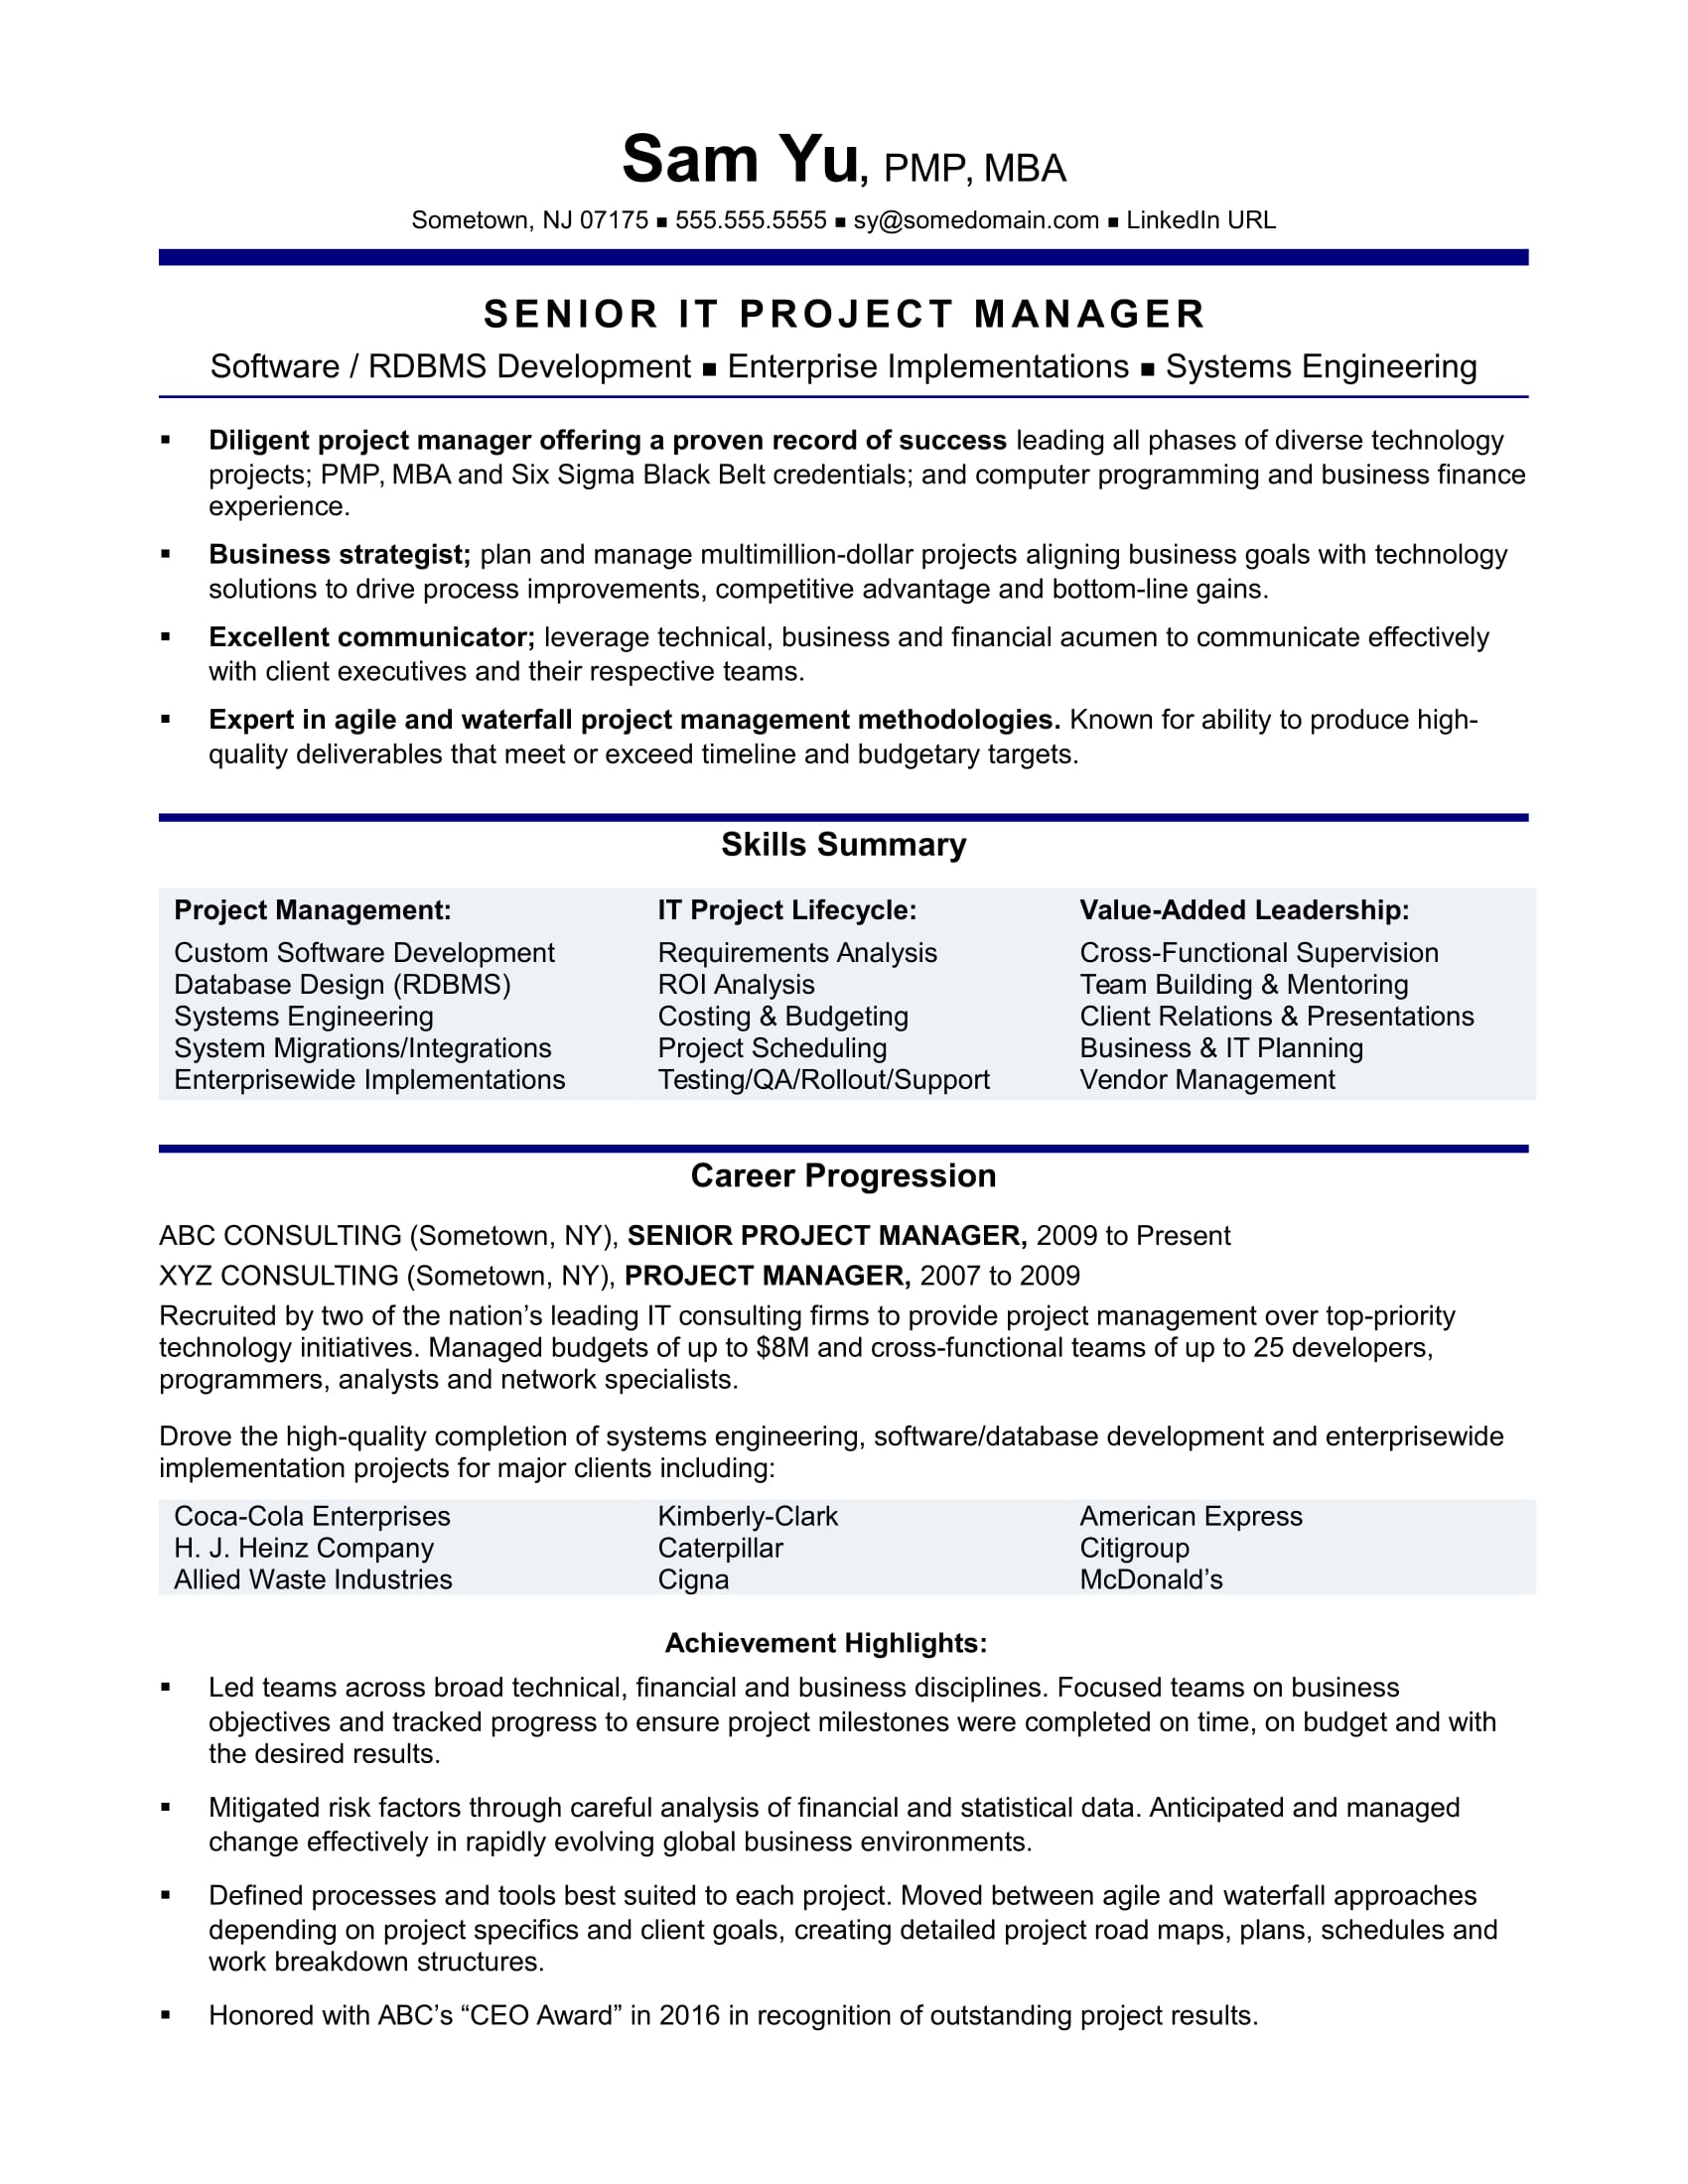 experienced it project manager resume sample monster software development examples Resume Software Development Manager Resume Examples 2020